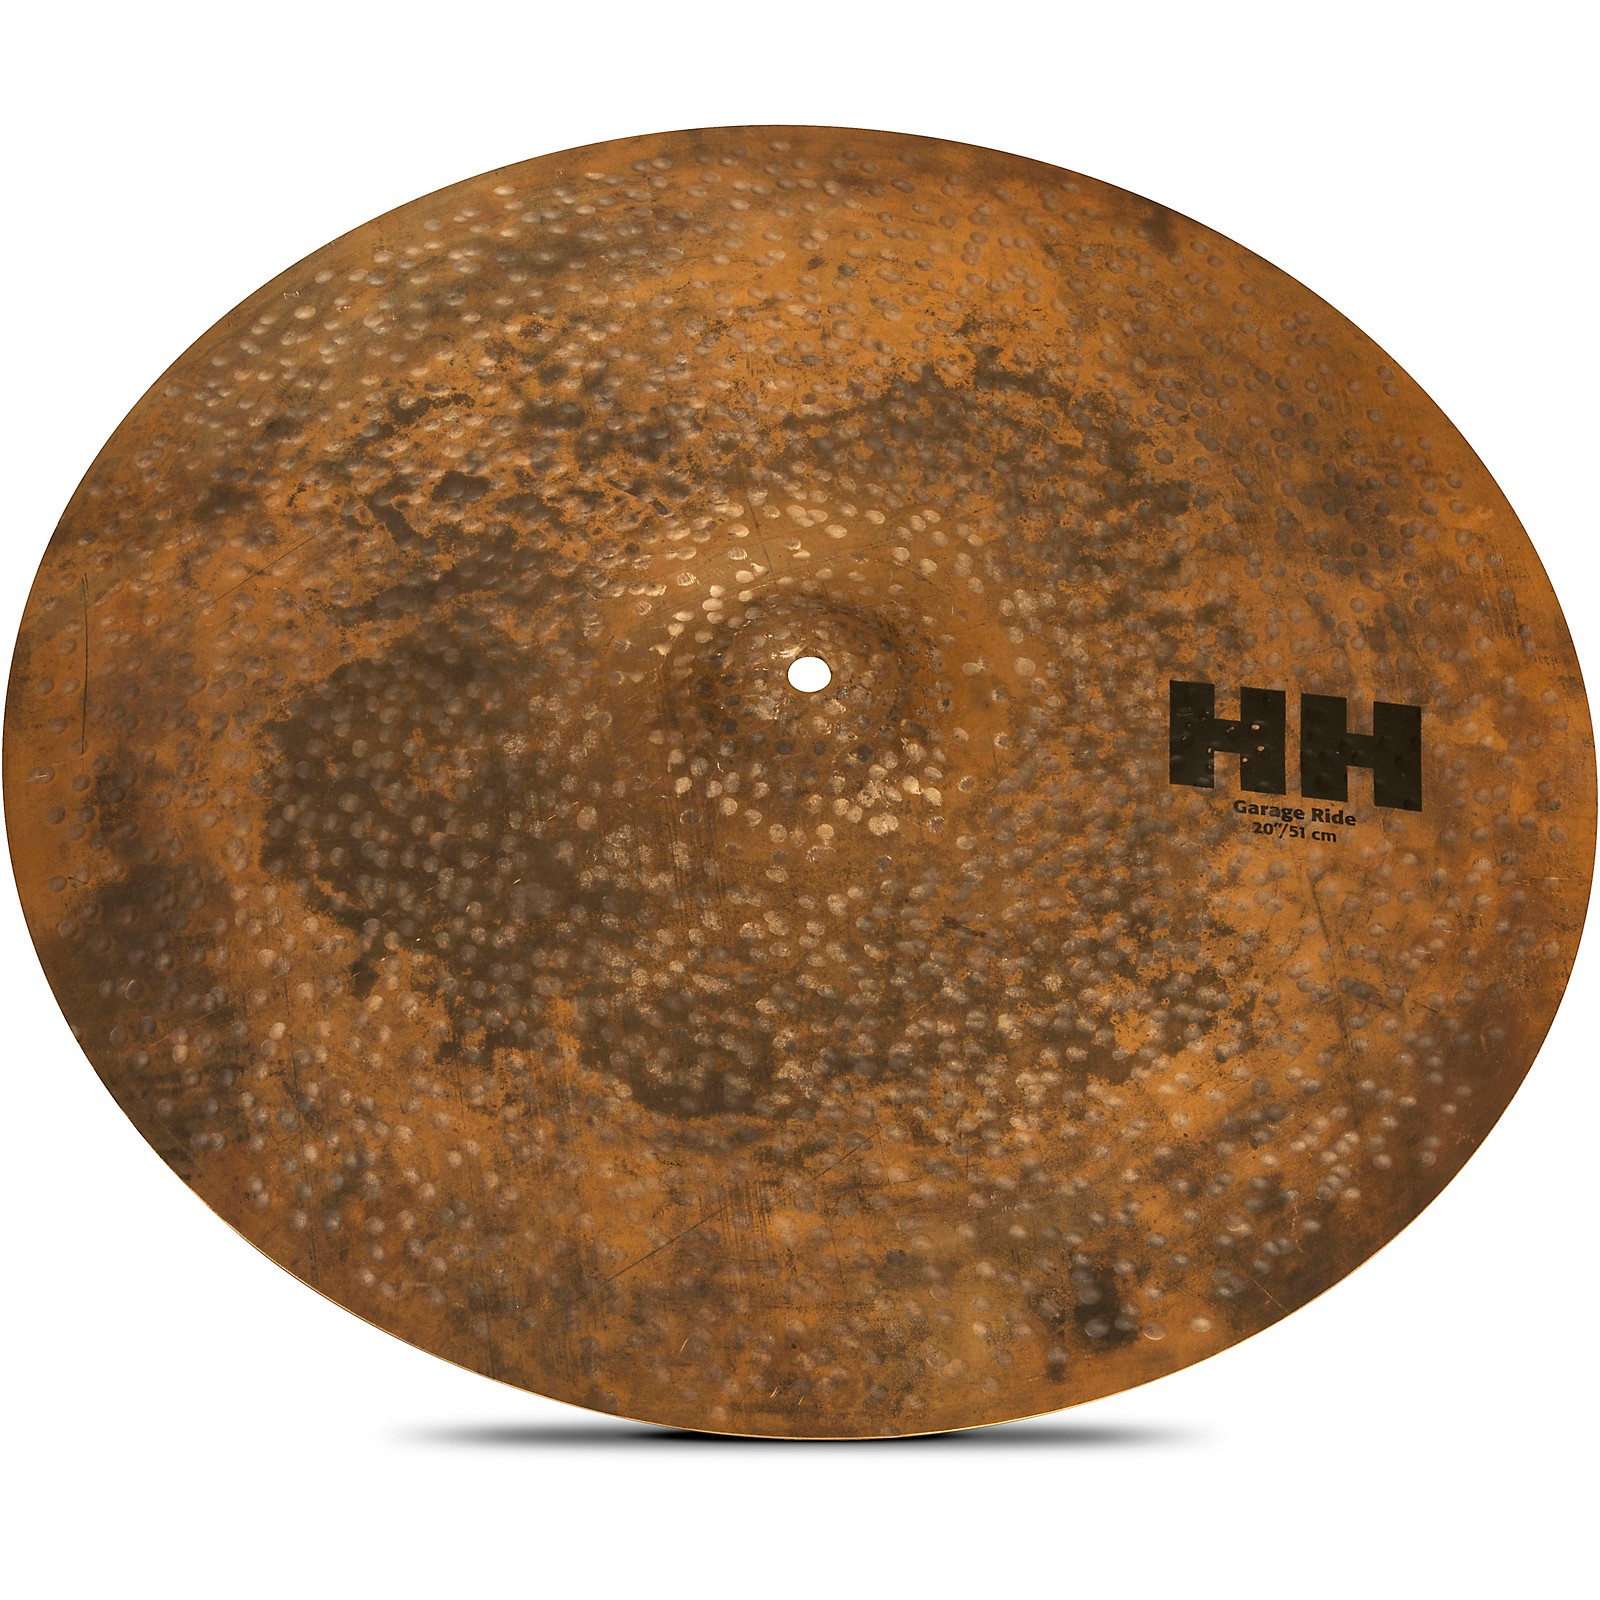 Sabian HH Garage Ride